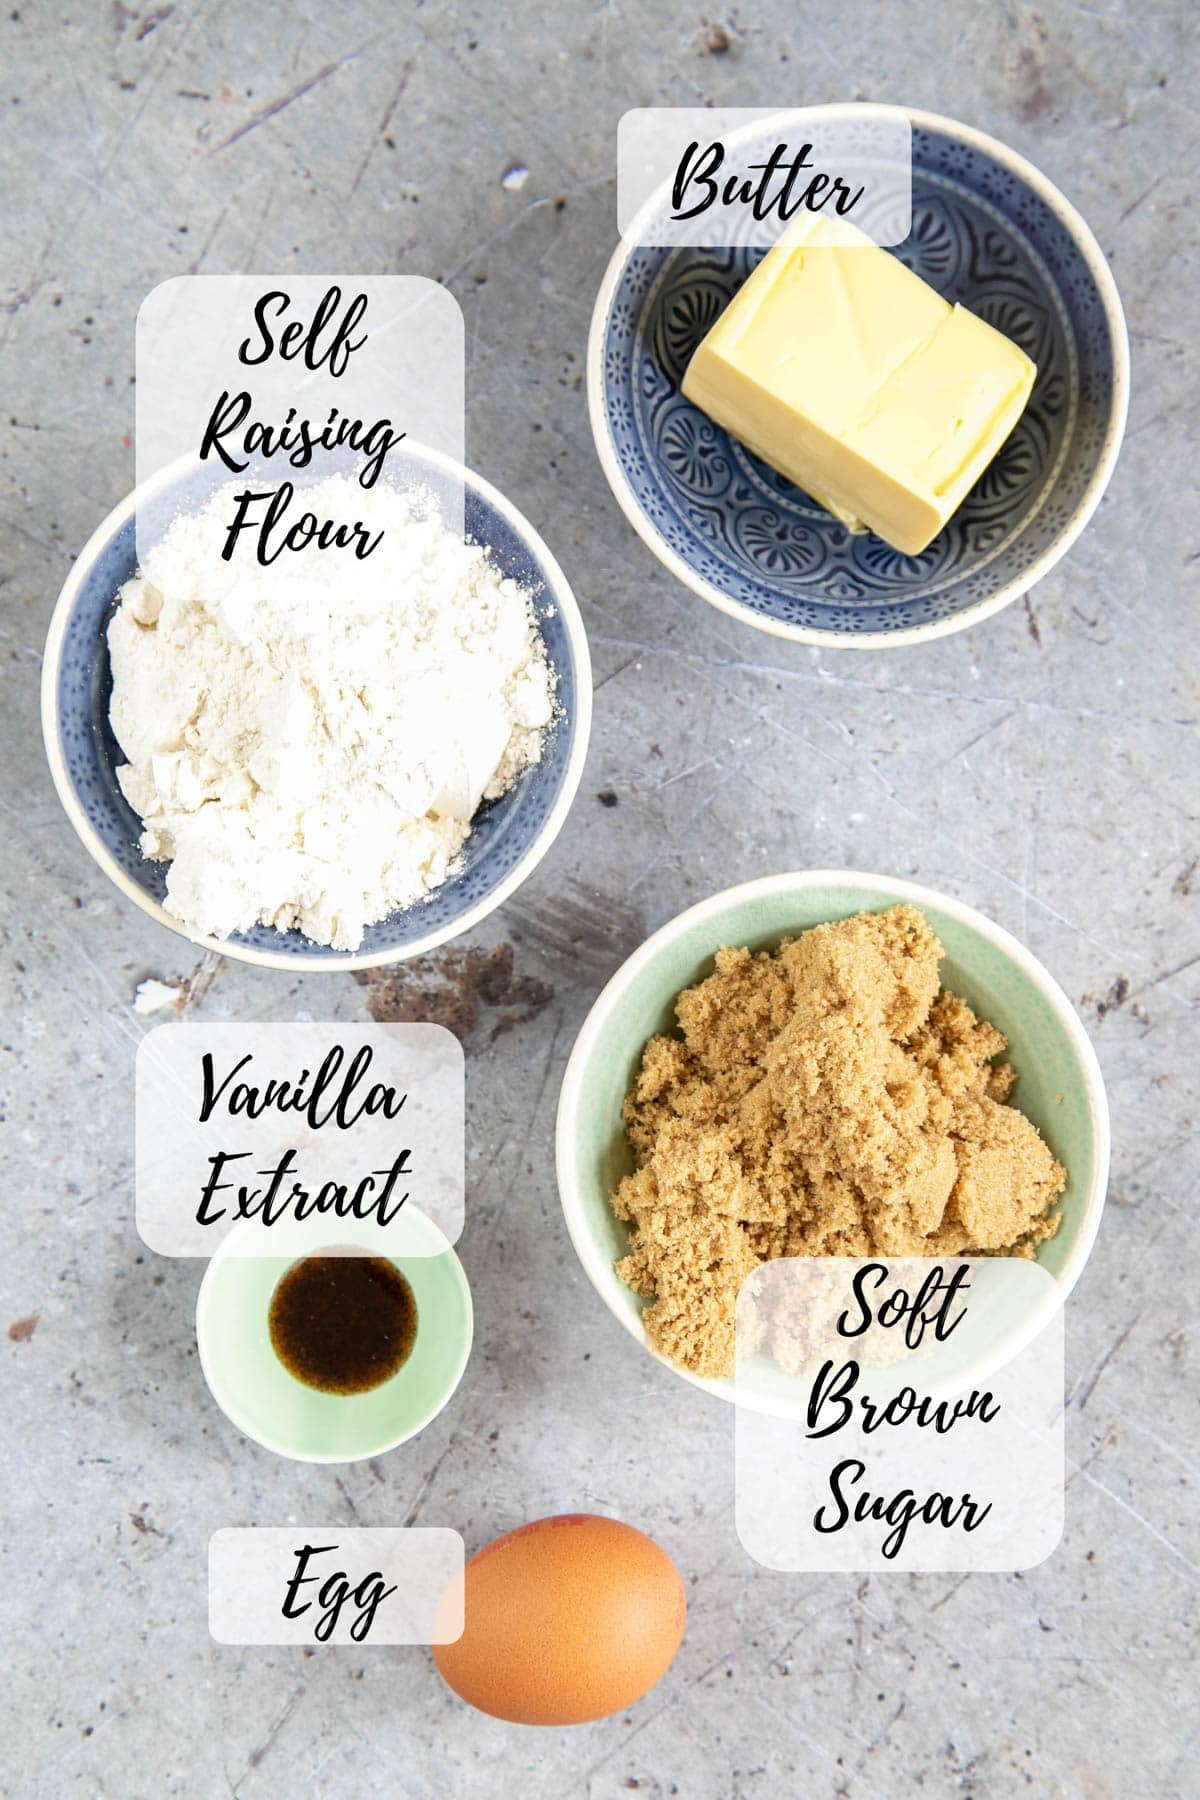 Ingredients for easy blondies: butter, sugar, an egg, vanilla extract, self raising flour. An annotated top down picture of all these ingredents.